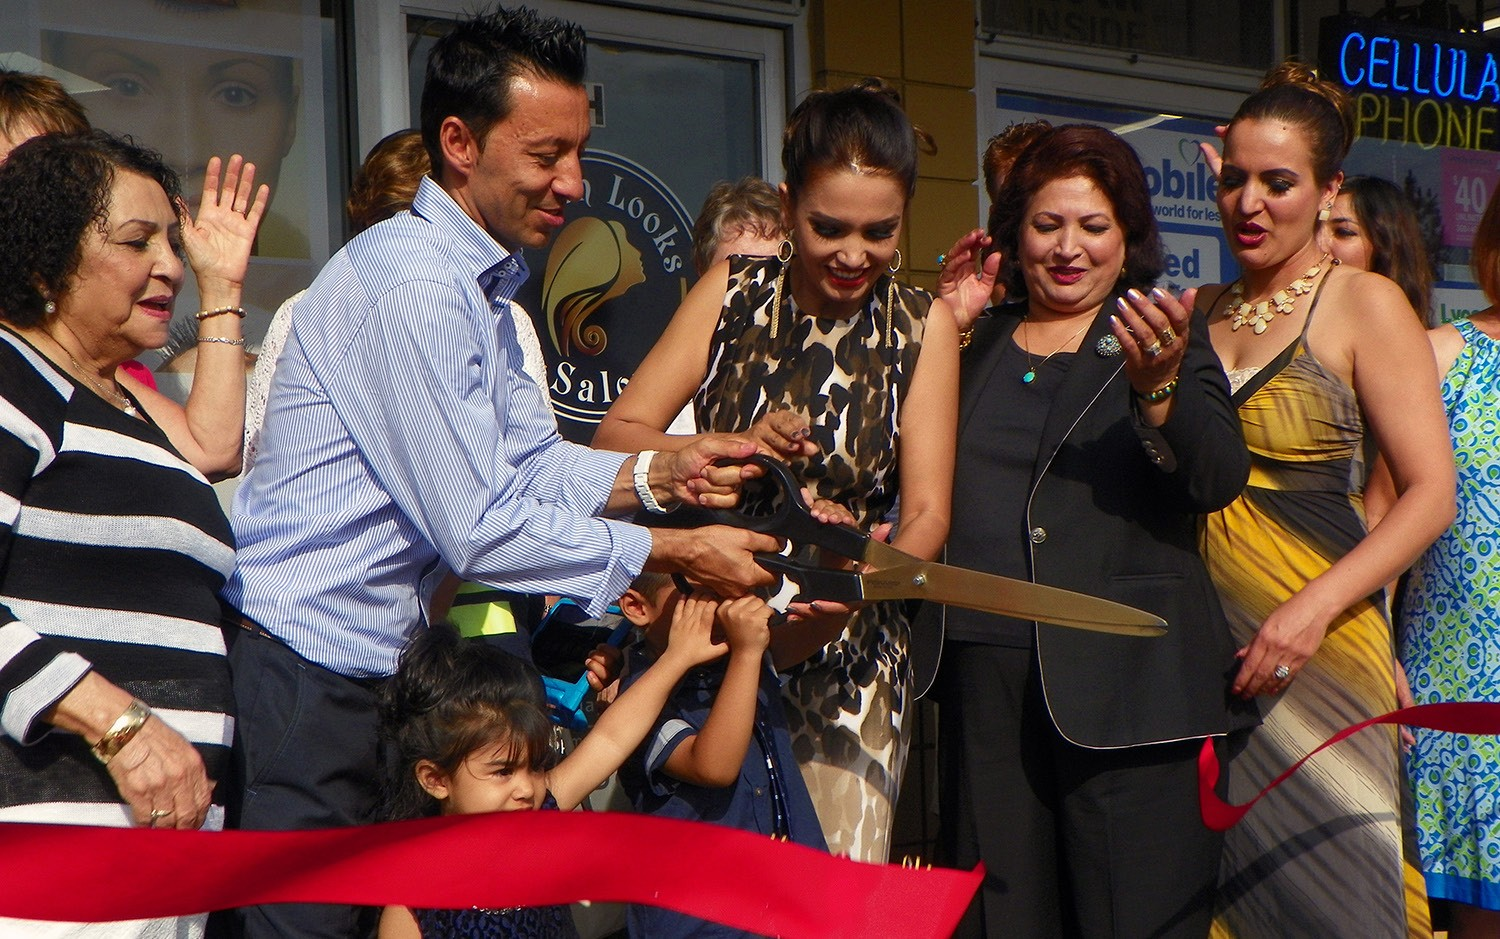 The Golden Looks Salon, a new business in Escondido, celebrated its ribbon cutting on Saturday. Owners Terra & Naim Arzo cut the ribbon. Photo by Kathy MacKenzie